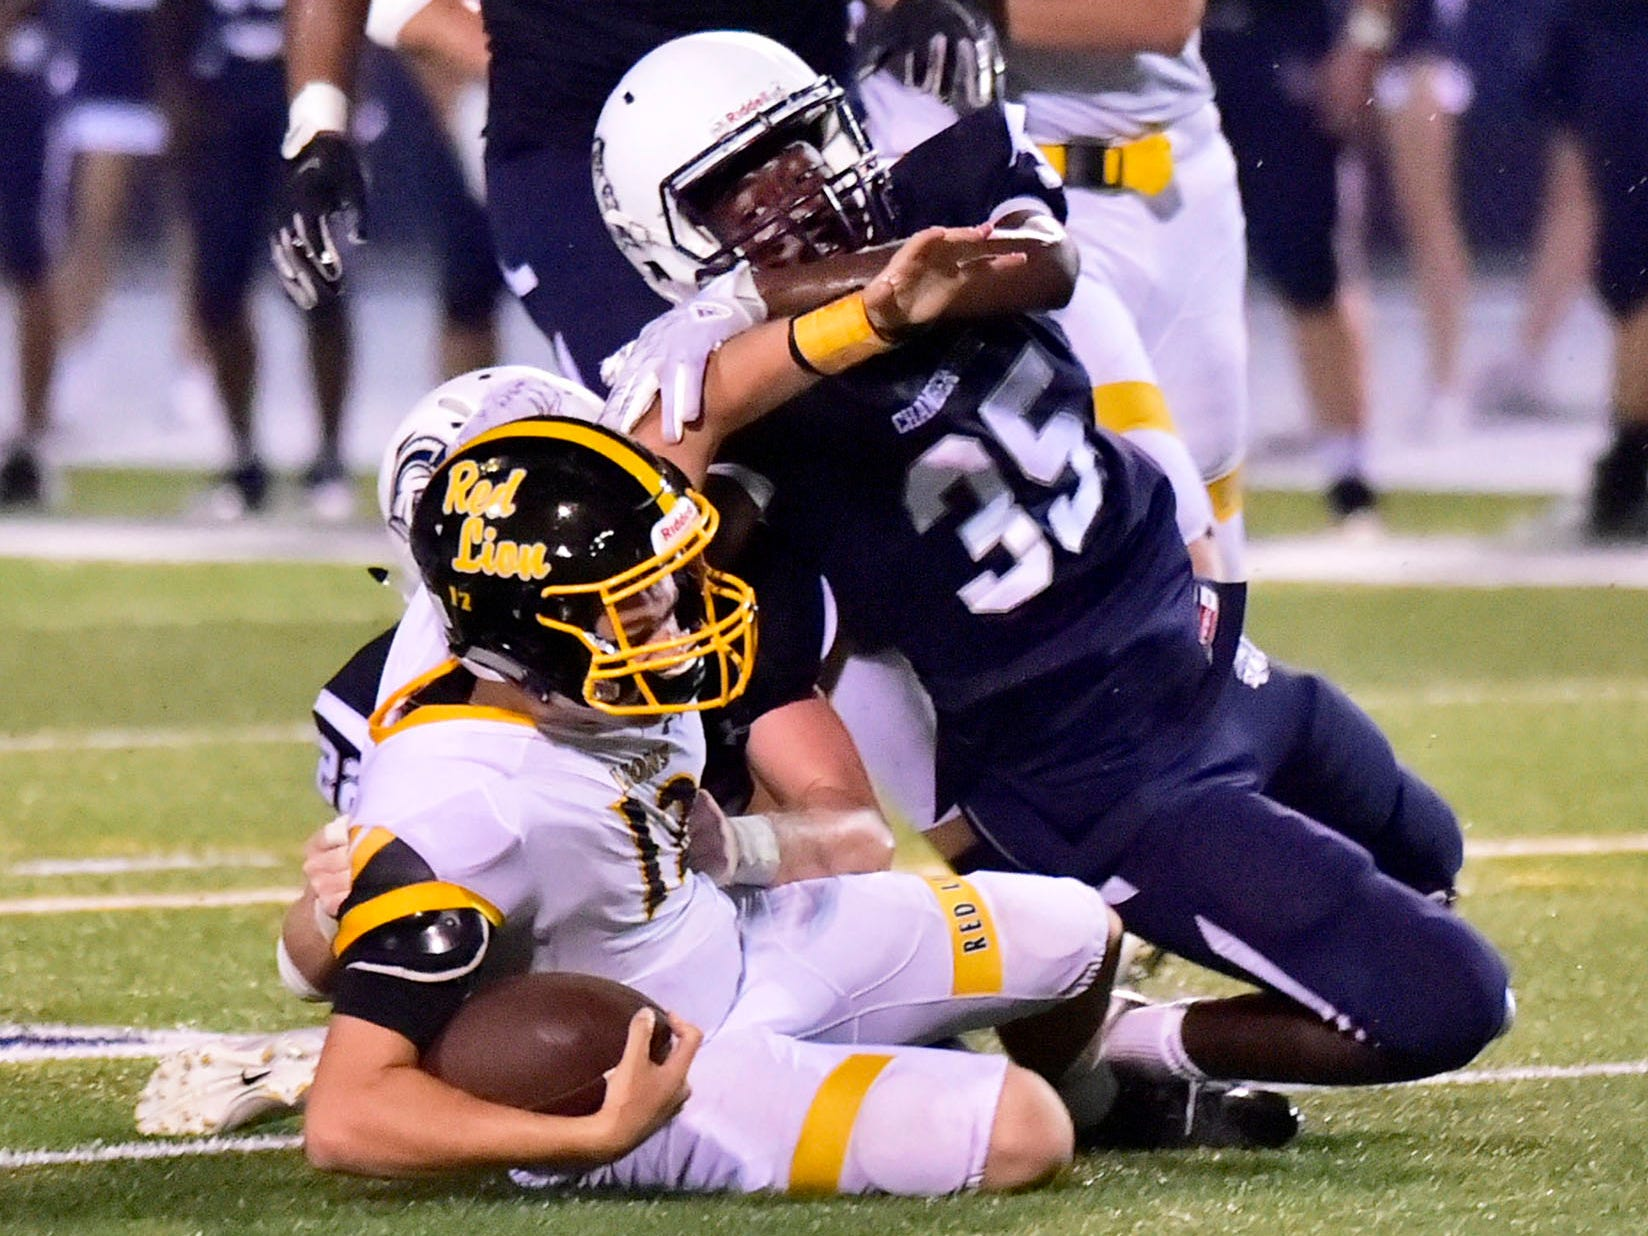 Chambersburg's DaQuan Rogers (35) brings down Red Lion QB Zach Mentzer (12) Chambersburg defeated Red Lion 28-19 in PIAA football on Friday, Sept. 7, 2018.